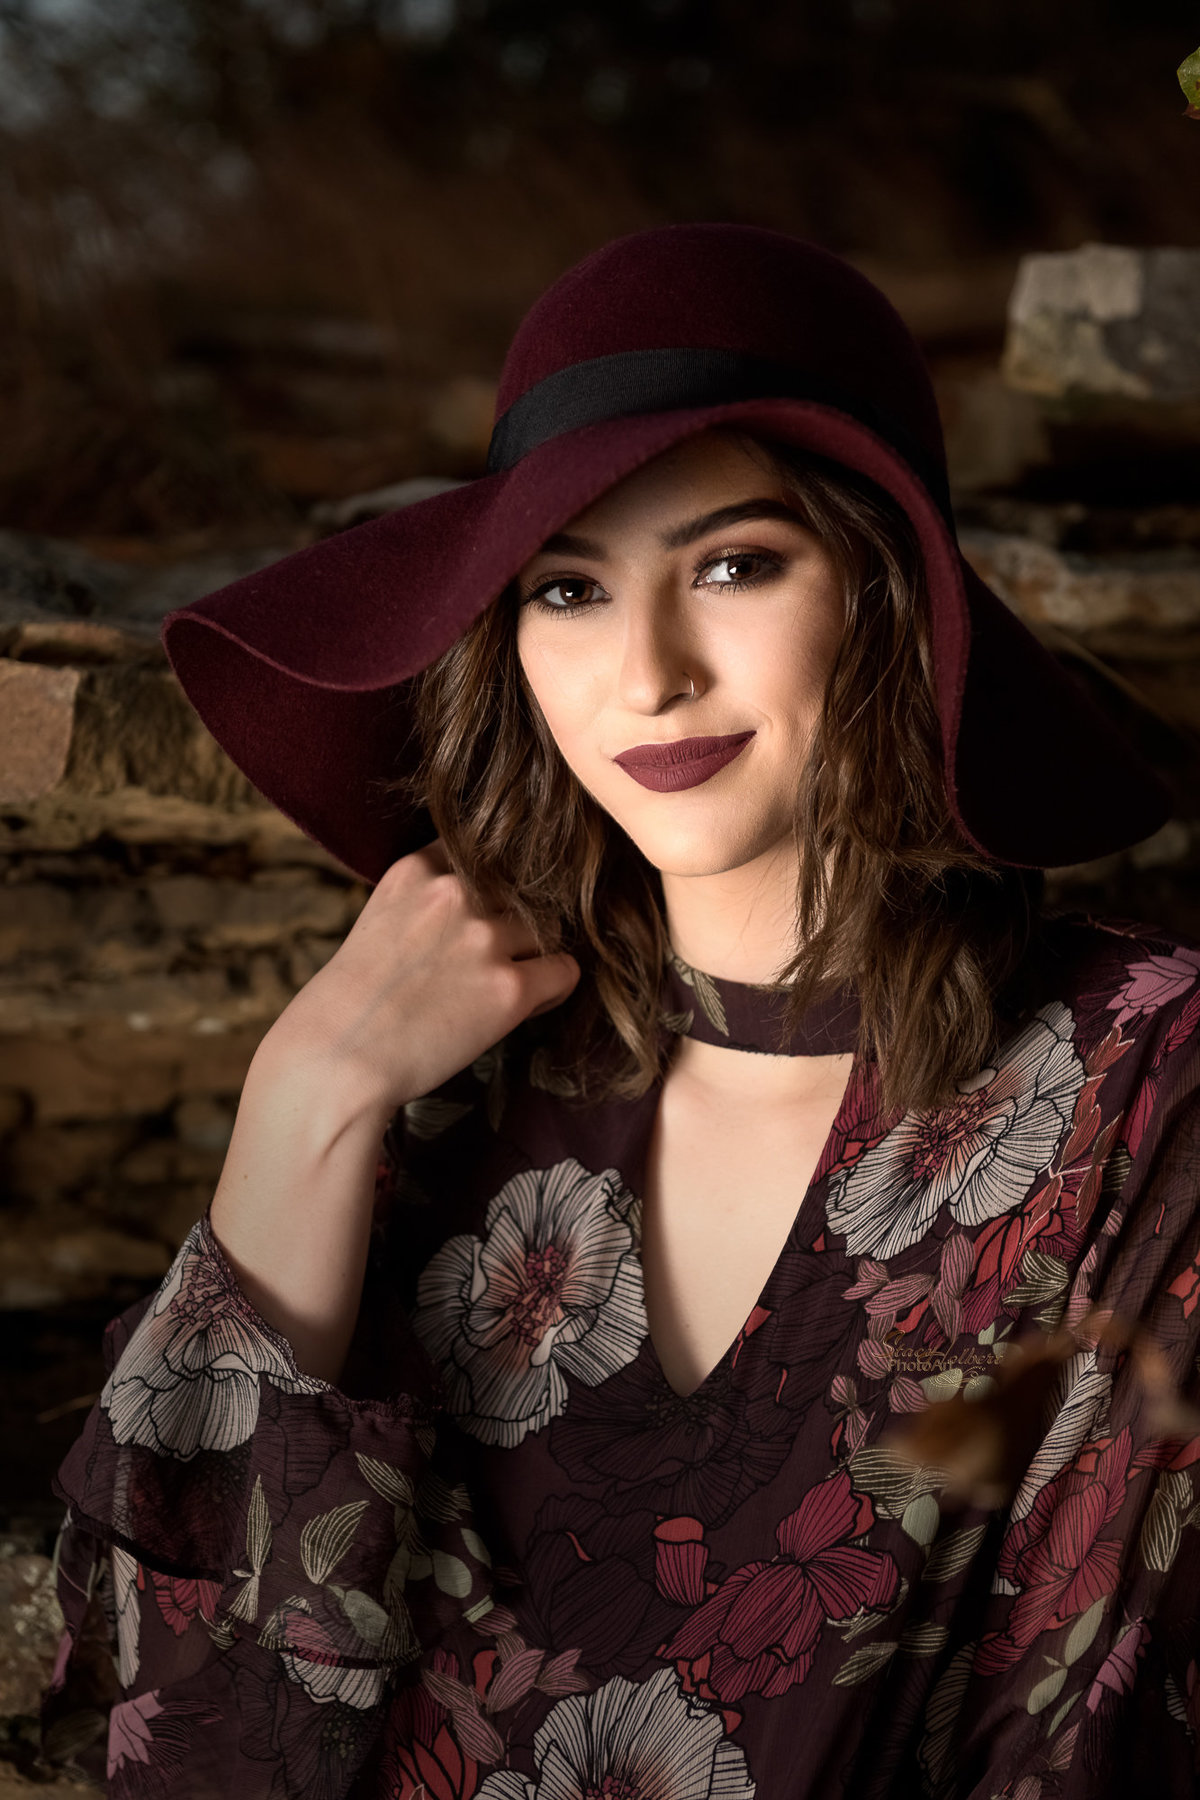 Senior Girl Portrait outdoors with hat. Photo by Stacy Holbert, Booneville AR